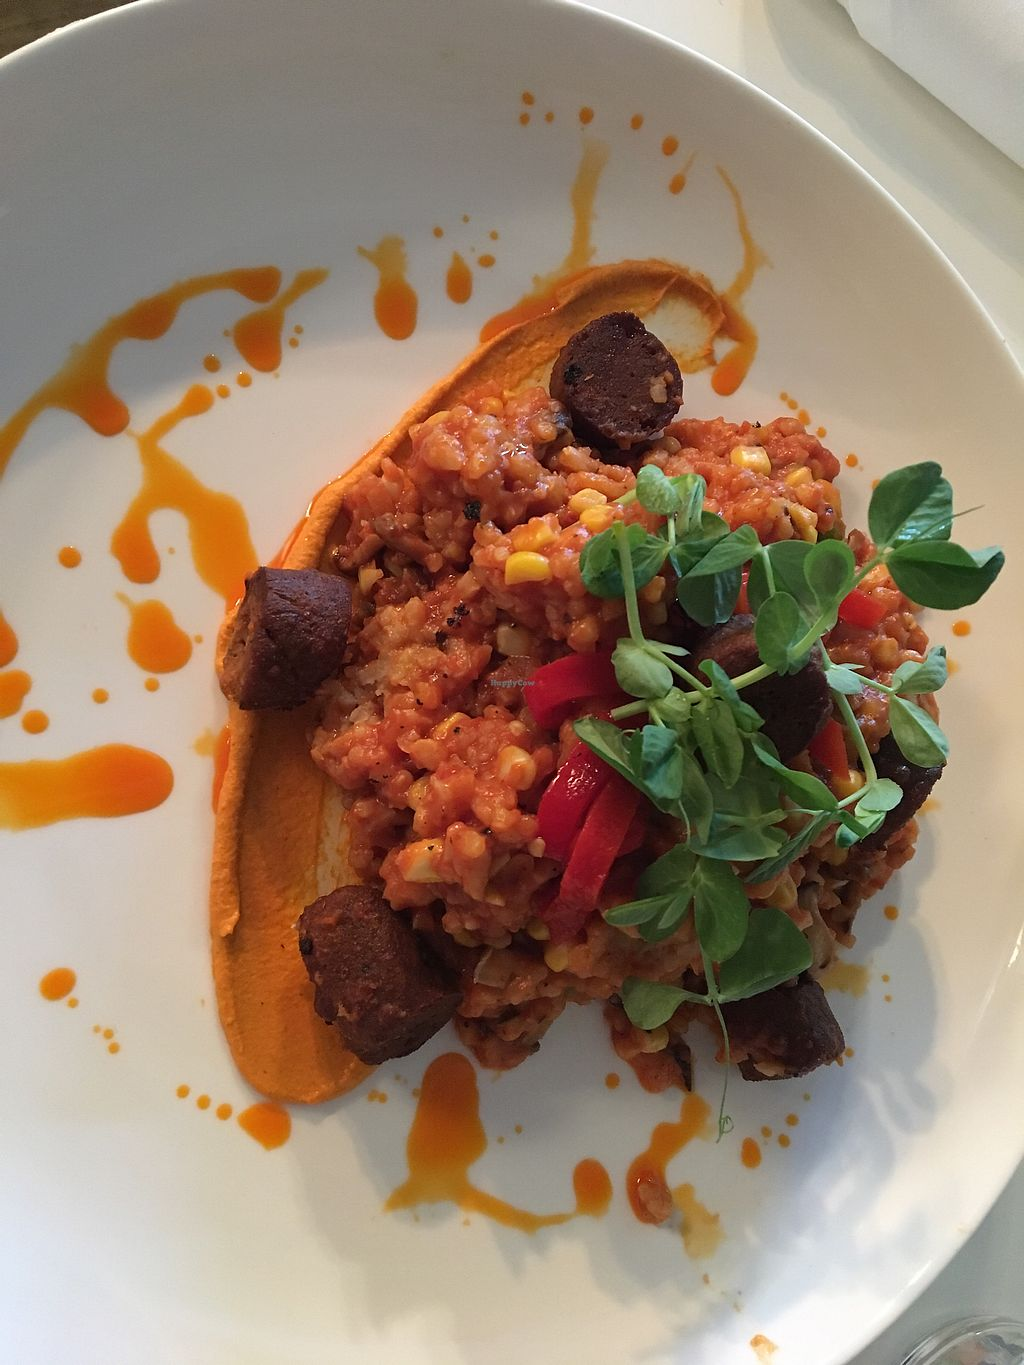 """Photo of VITA Vegan Paradise - temporarily closed  by <a href=""""/members/profile/aner1kind17"""">aner1kind17</a> <br/>paella <br/> July 23, 2017  - <a href='/contact/abuse/image/87602/283435'>Report</a>"""